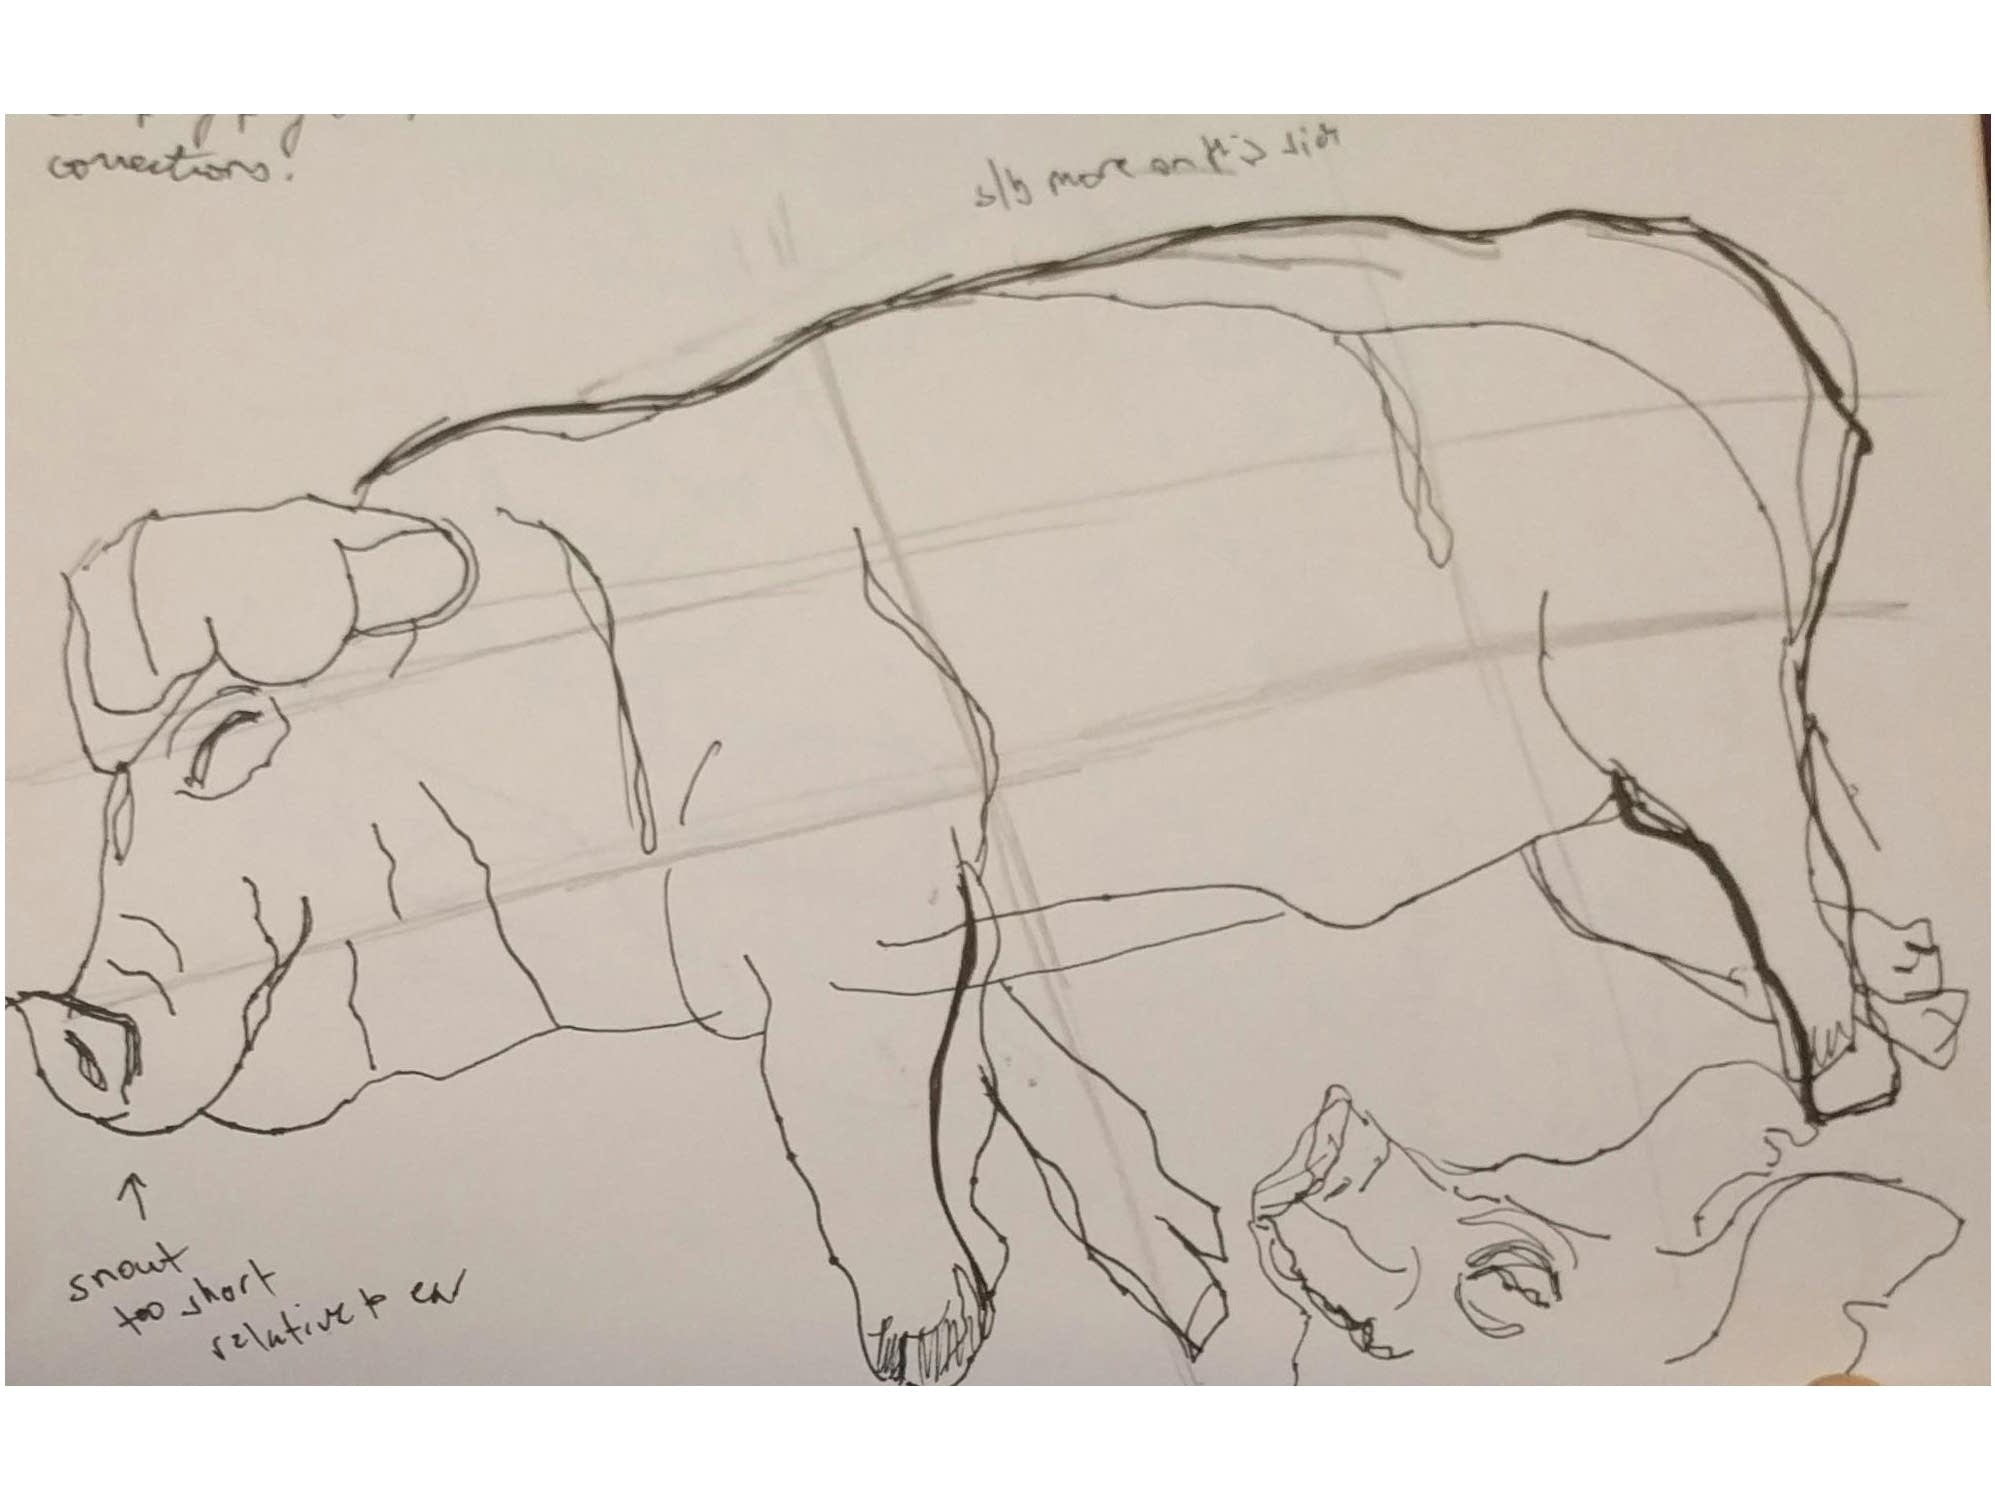 A sketch of a sleeping pig, complete with artist's critique